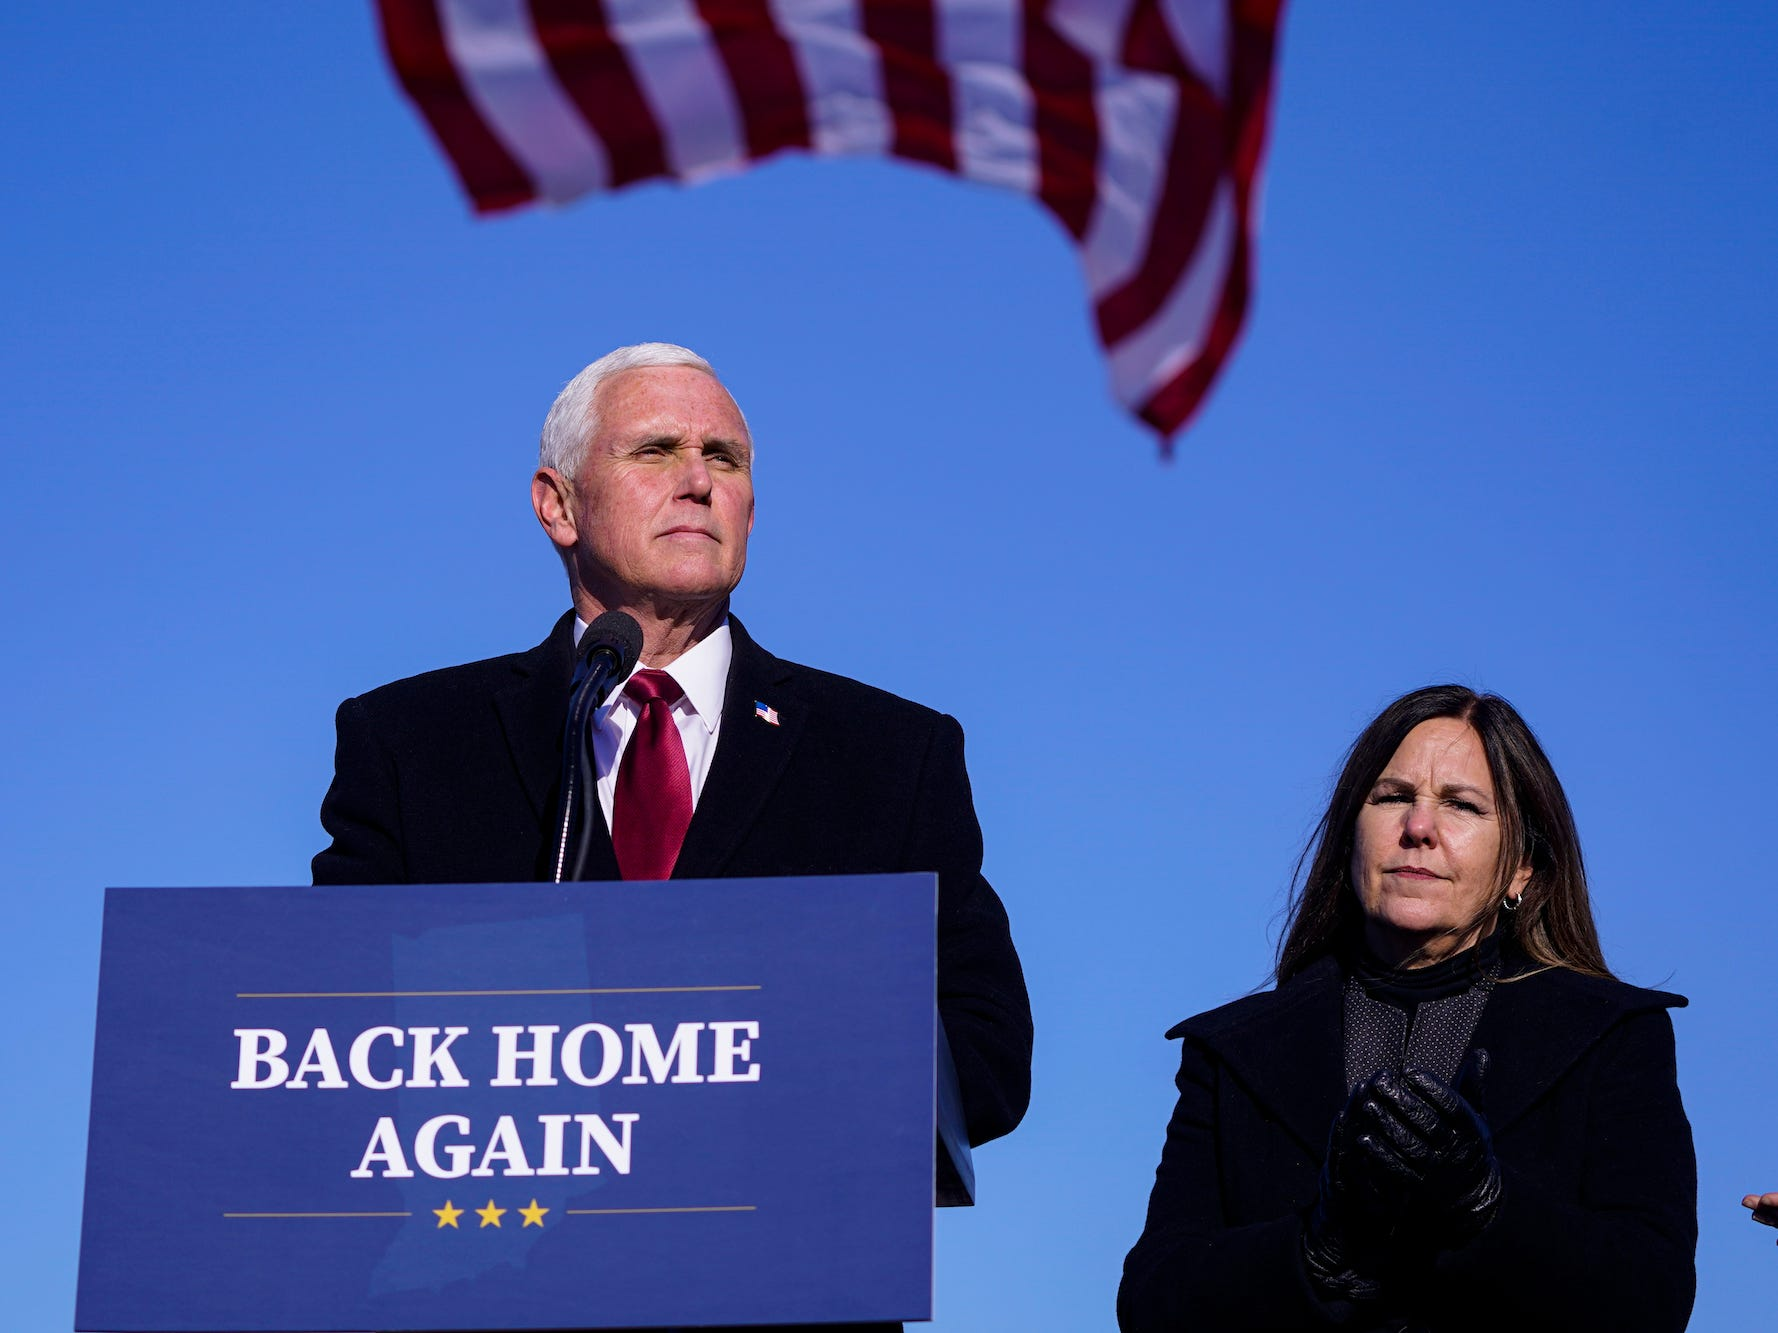 Mike and Karen Pence are homeless and appear to be couch surfing their contrivance by Indiana